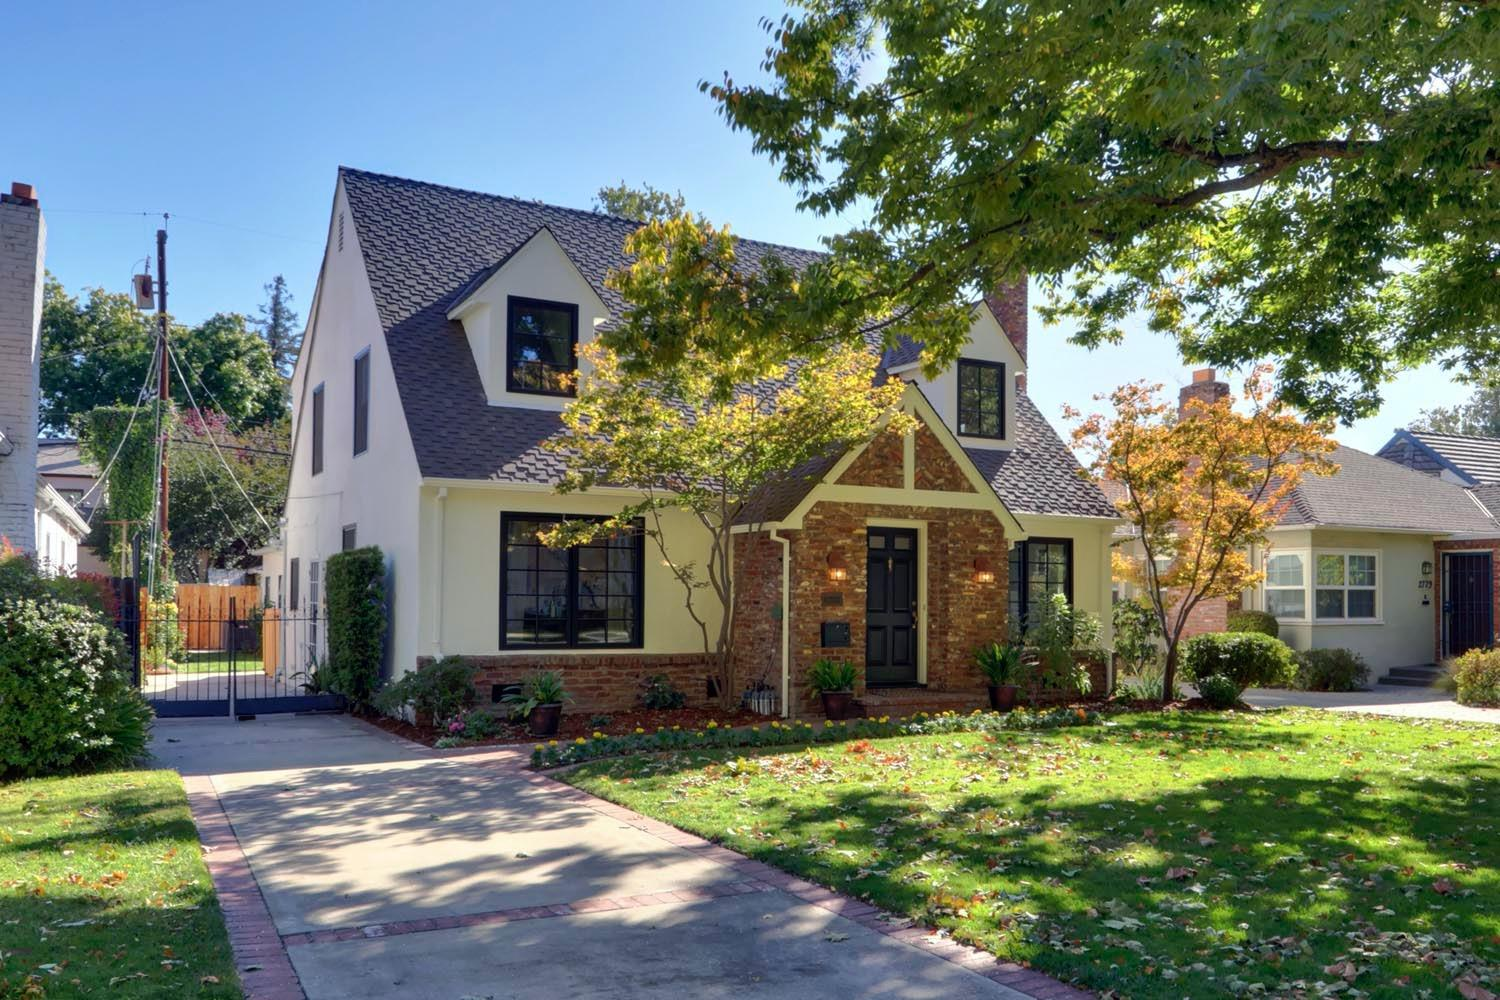 Welcome to 2777 Land Park Drive! This recently updated home is located in one of Sacramento's most coveted neighborhoods. The beautiful brick Tudor exterior has new custom black wood windows and is freshly painted. Upon entering the home, you are welcomed with a large living room, gas fireplace, inlaid hardwood flooring, and detailed trim ceilings. The updated kitchen has plenty of cabinets and counter space and a lovely view from your kitchen breakfast table. Off the kitchen, you will find a large formal dining room with views of the brick patio through the french doors. The family room, with a wood-burning fireplace, could also work as a downstairs main bedroom with a full ensuite bath. Upstairs you will find four bedrooms and a full bath with a separate shower and tub. The big bonus with this home is the newly built guest home (ADU), meticulously designed for optimum living. The location is outstanding, offering a wonderful community, schools, William Land Park.